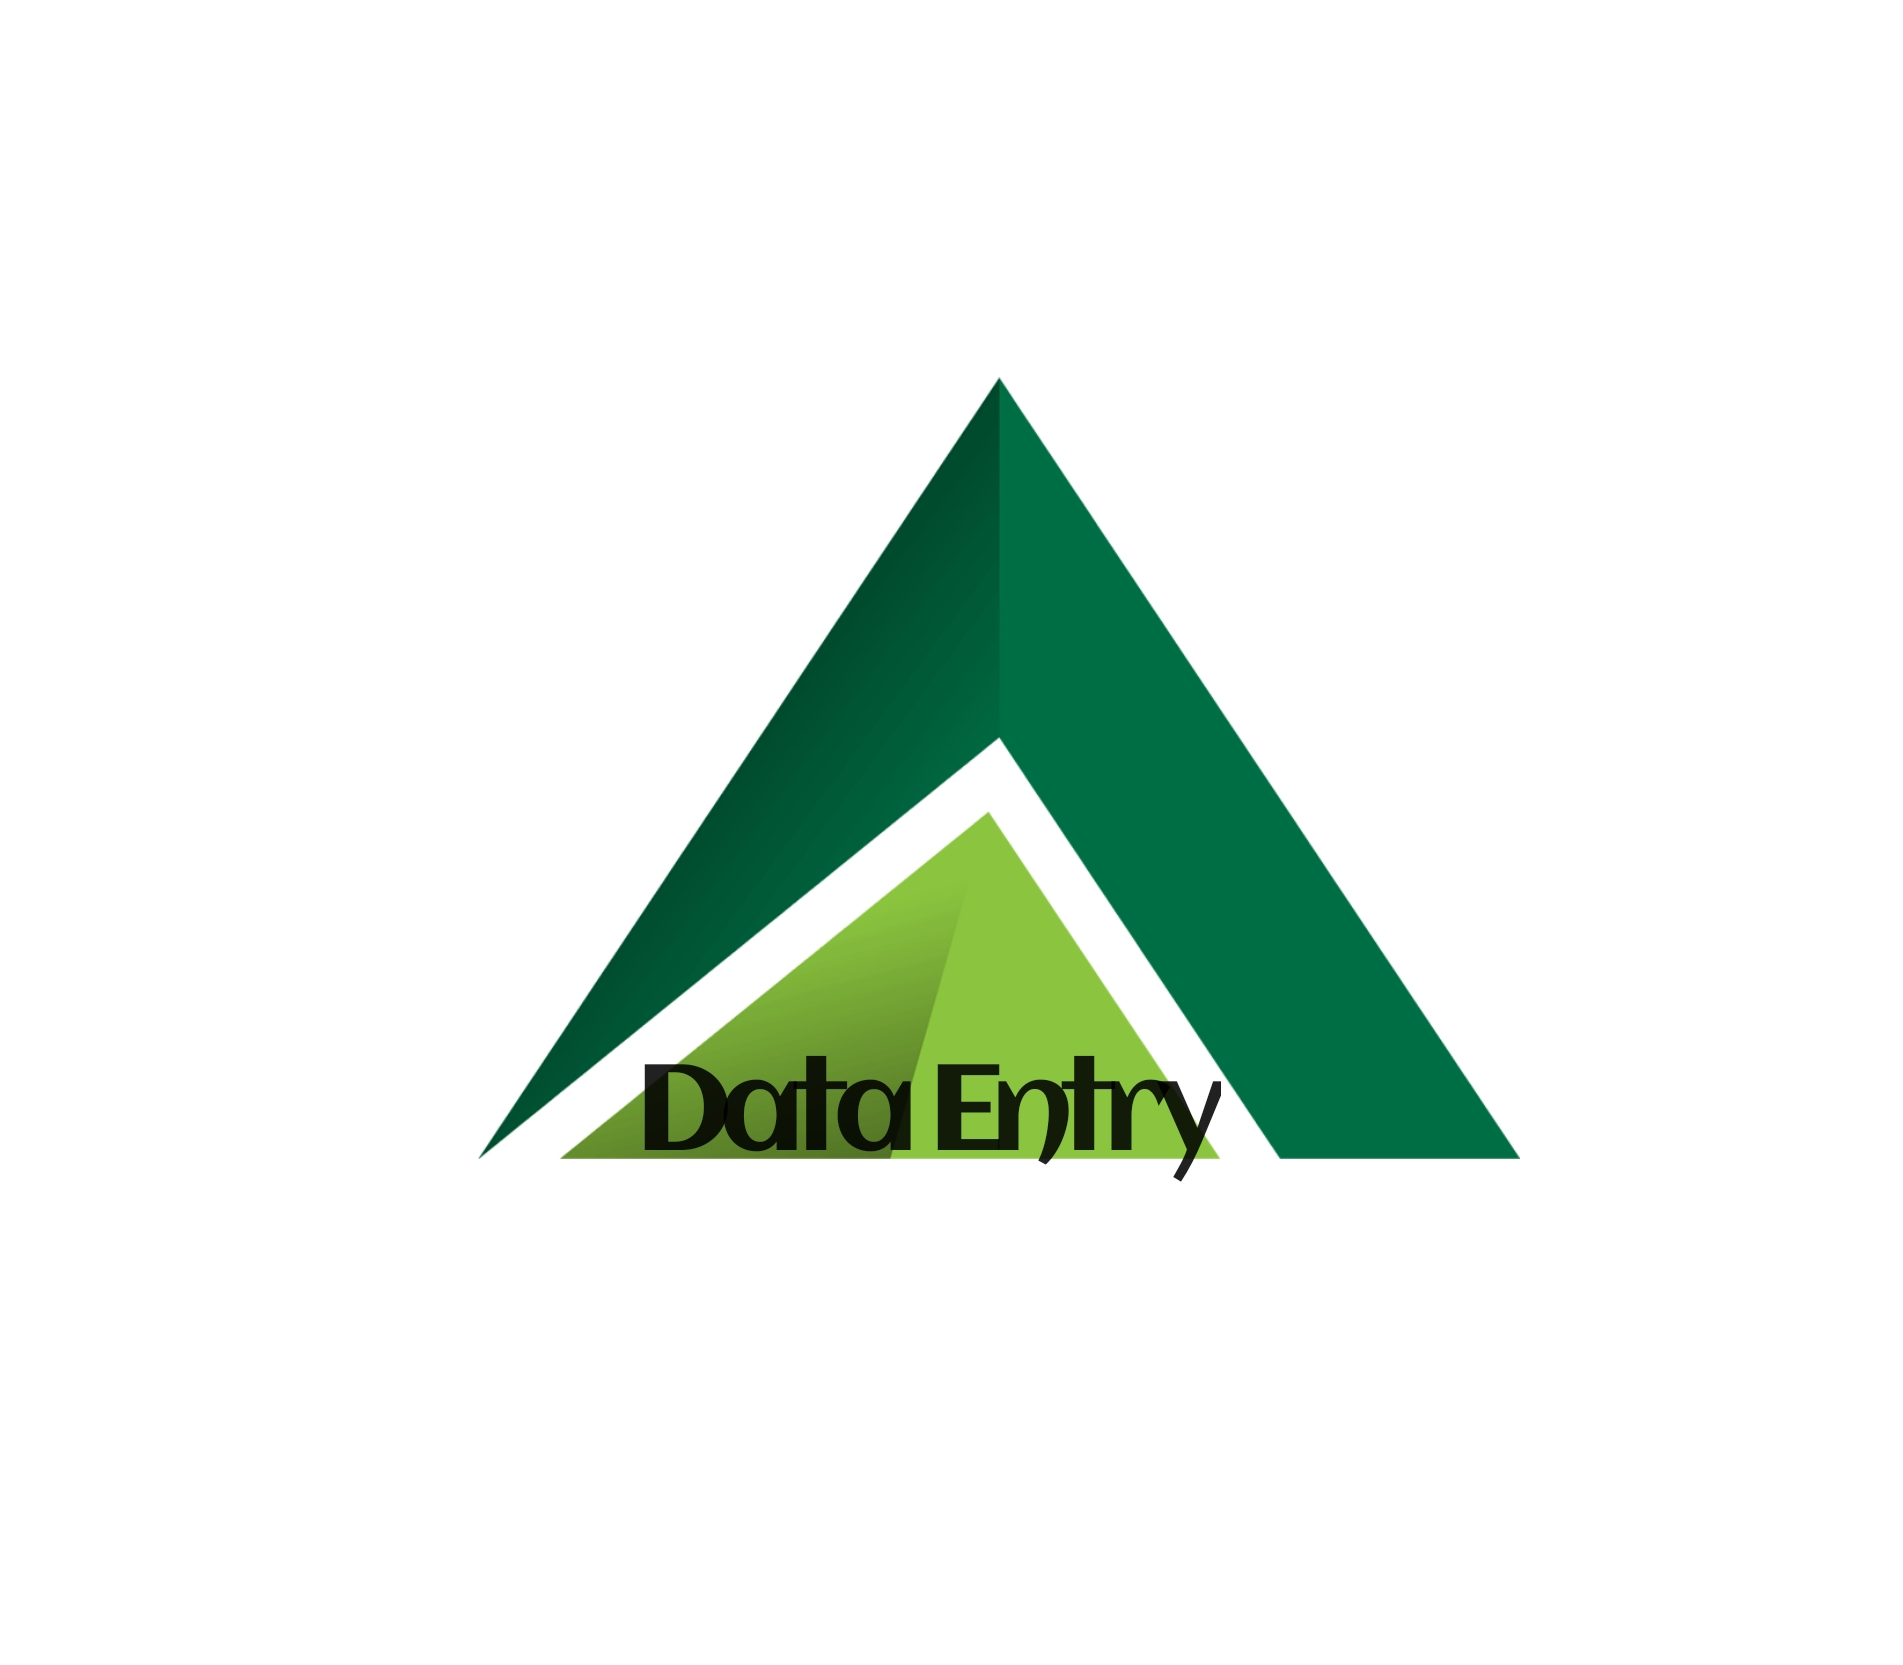 I can do Data Entry work in minimum time with maximum quality